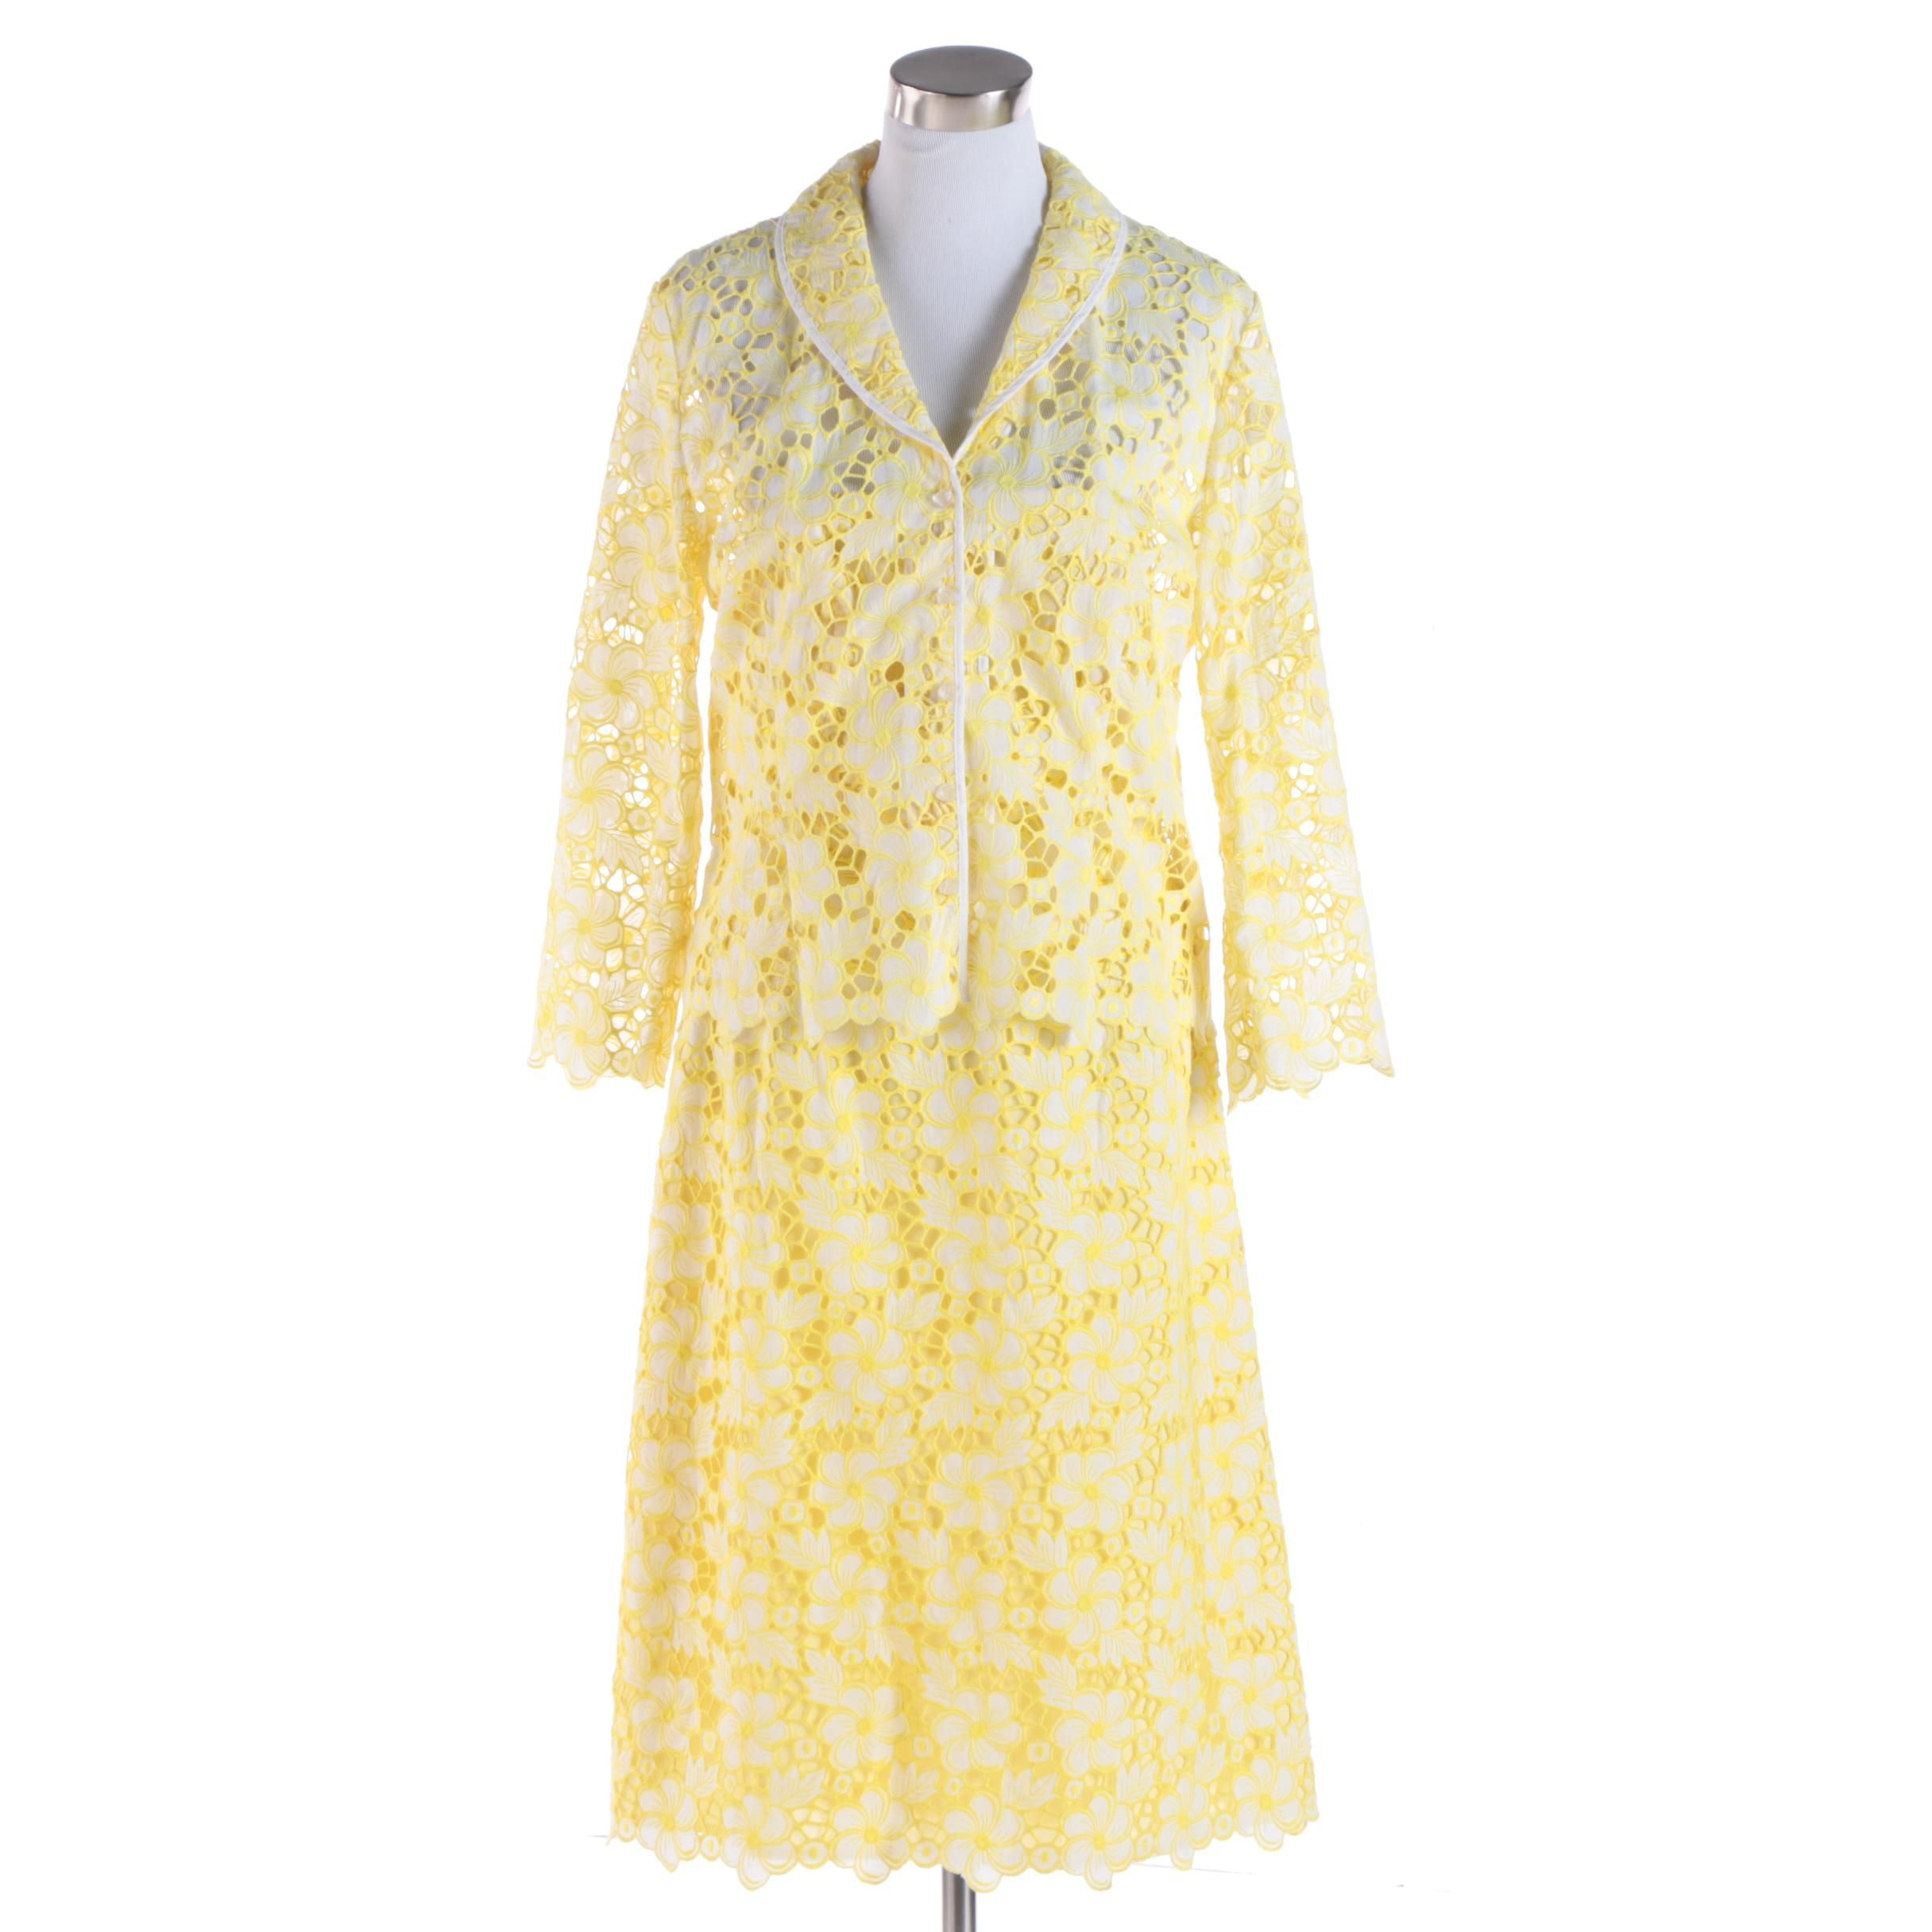 Lilly Pulitzer Yellow Eyelet Lace Dress Suit